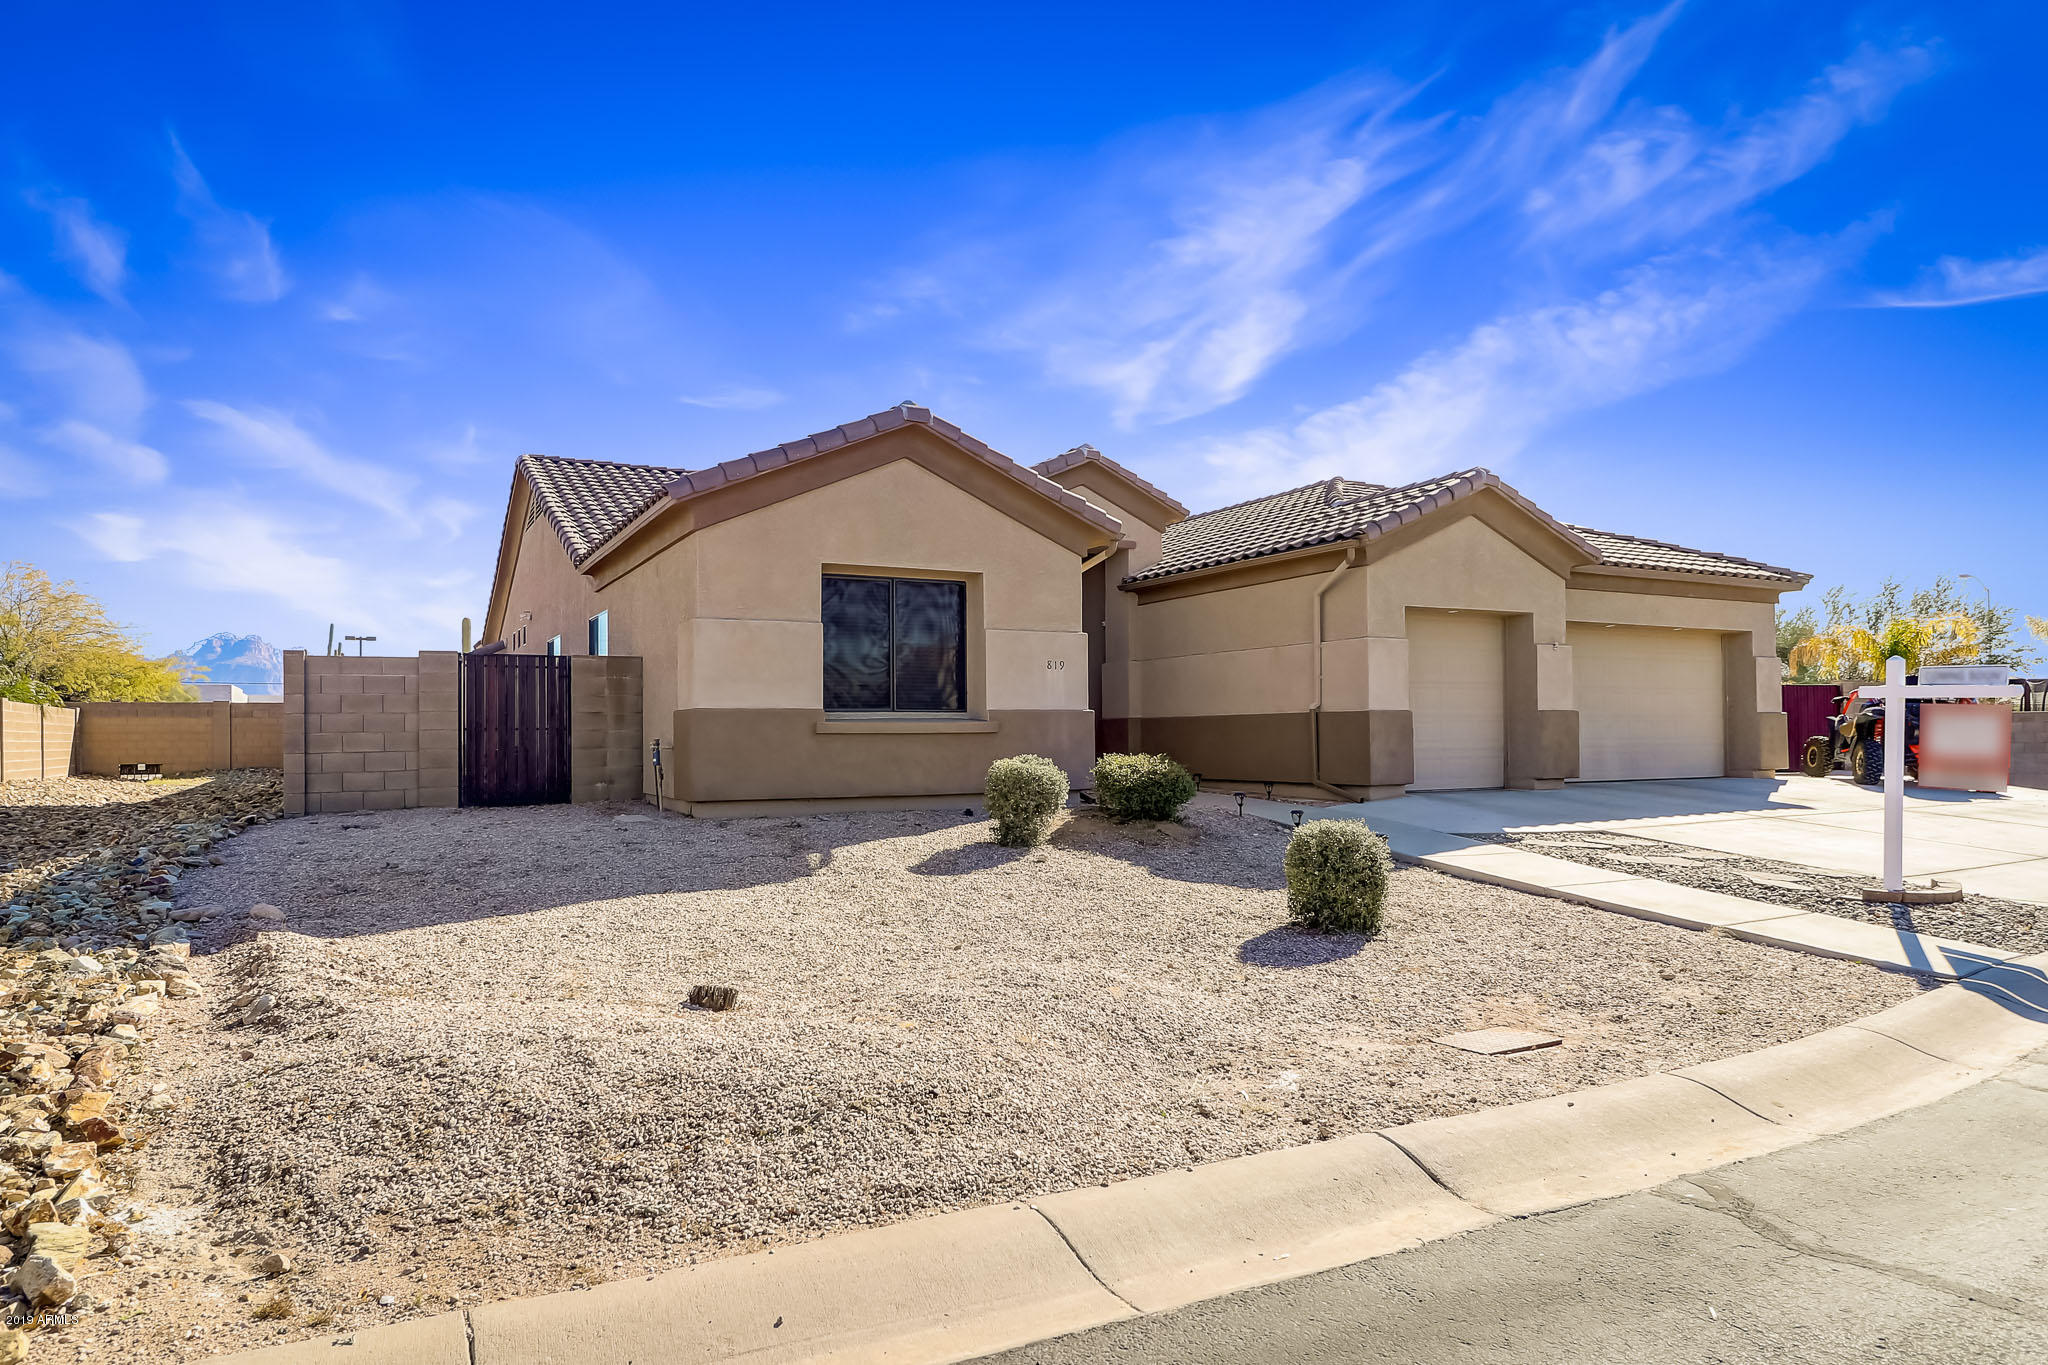 Photo of 819 N PAYTON --, Mesa, AZ 85207